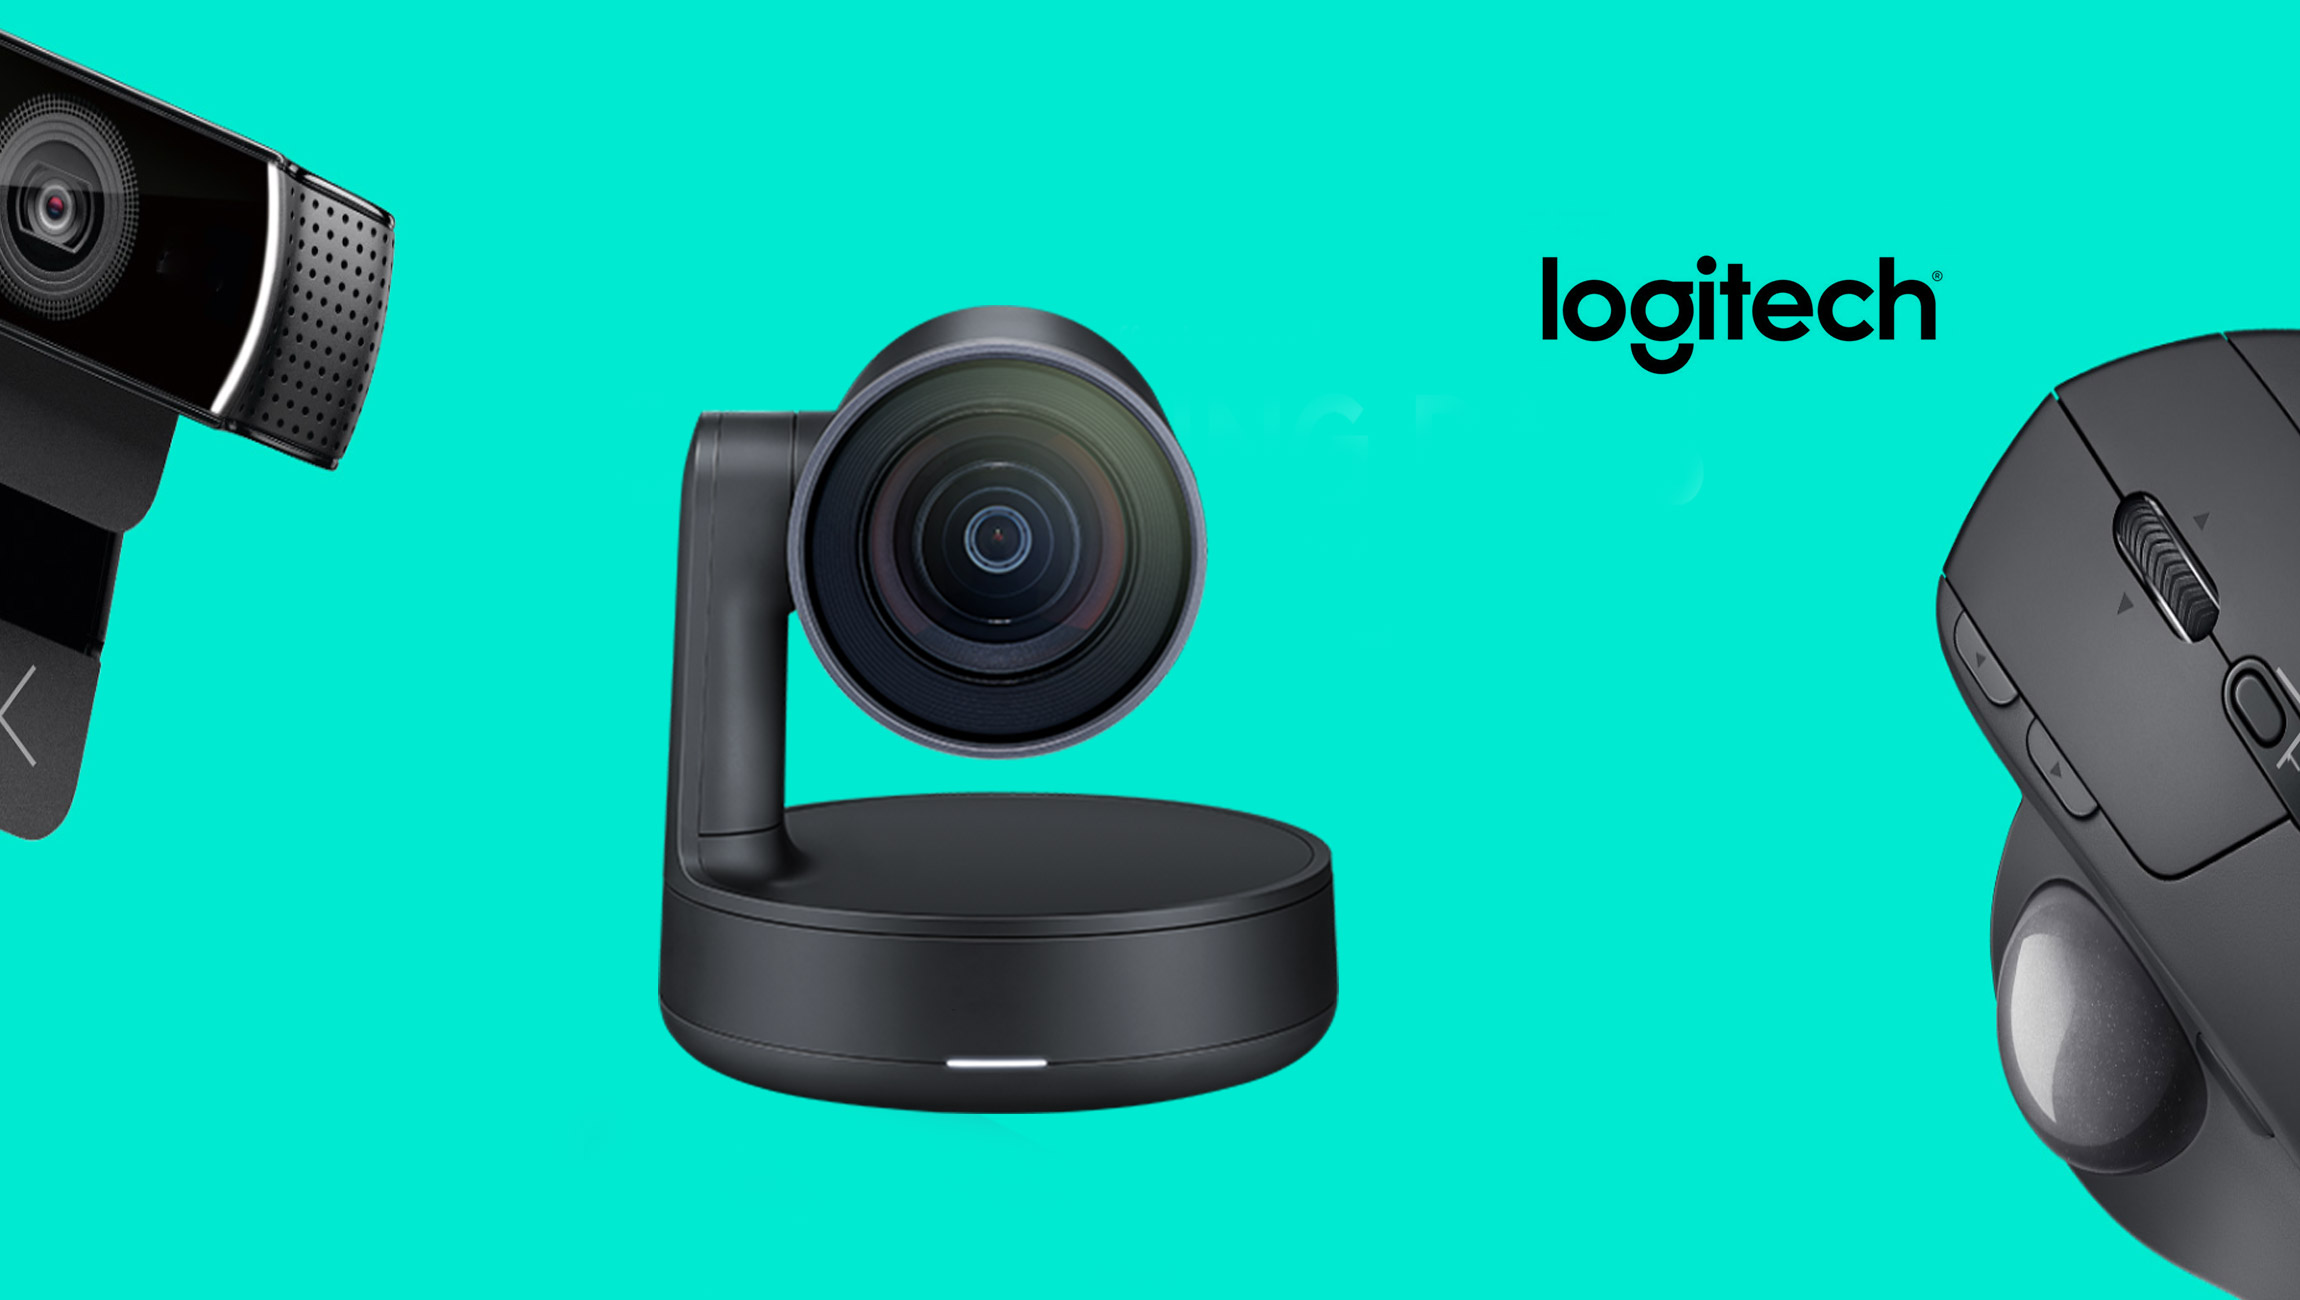 Logitech Announces Simple, Scalable and Modern Video Conferencing Device Management